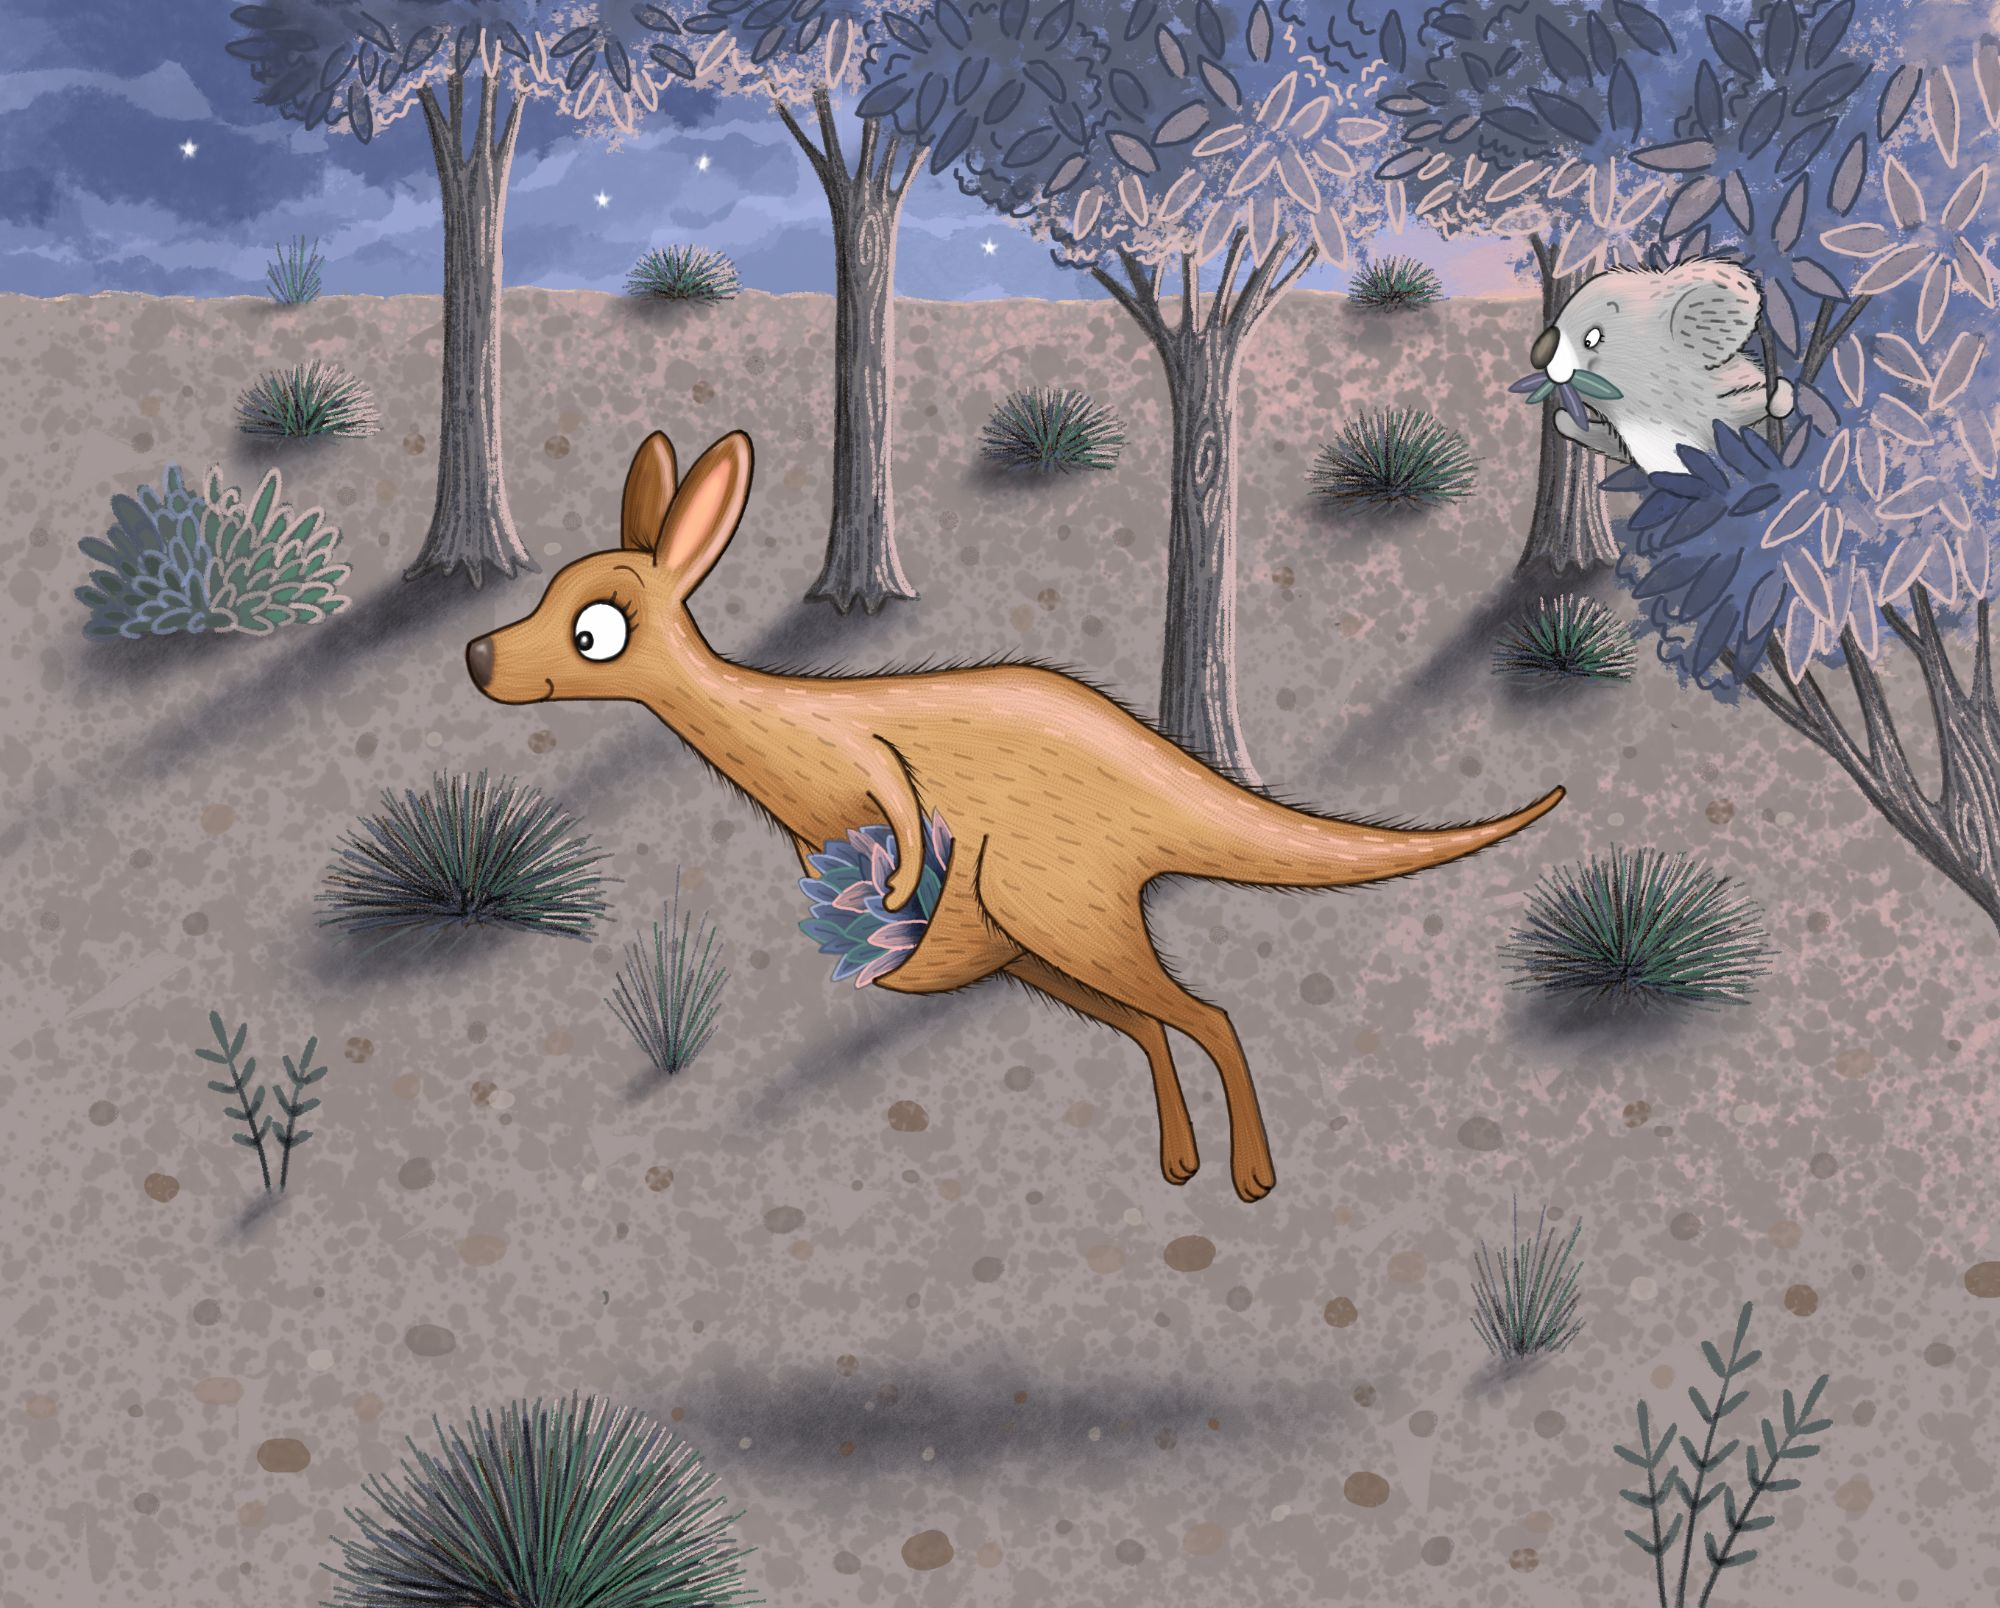 Kangeroo and koala illustration